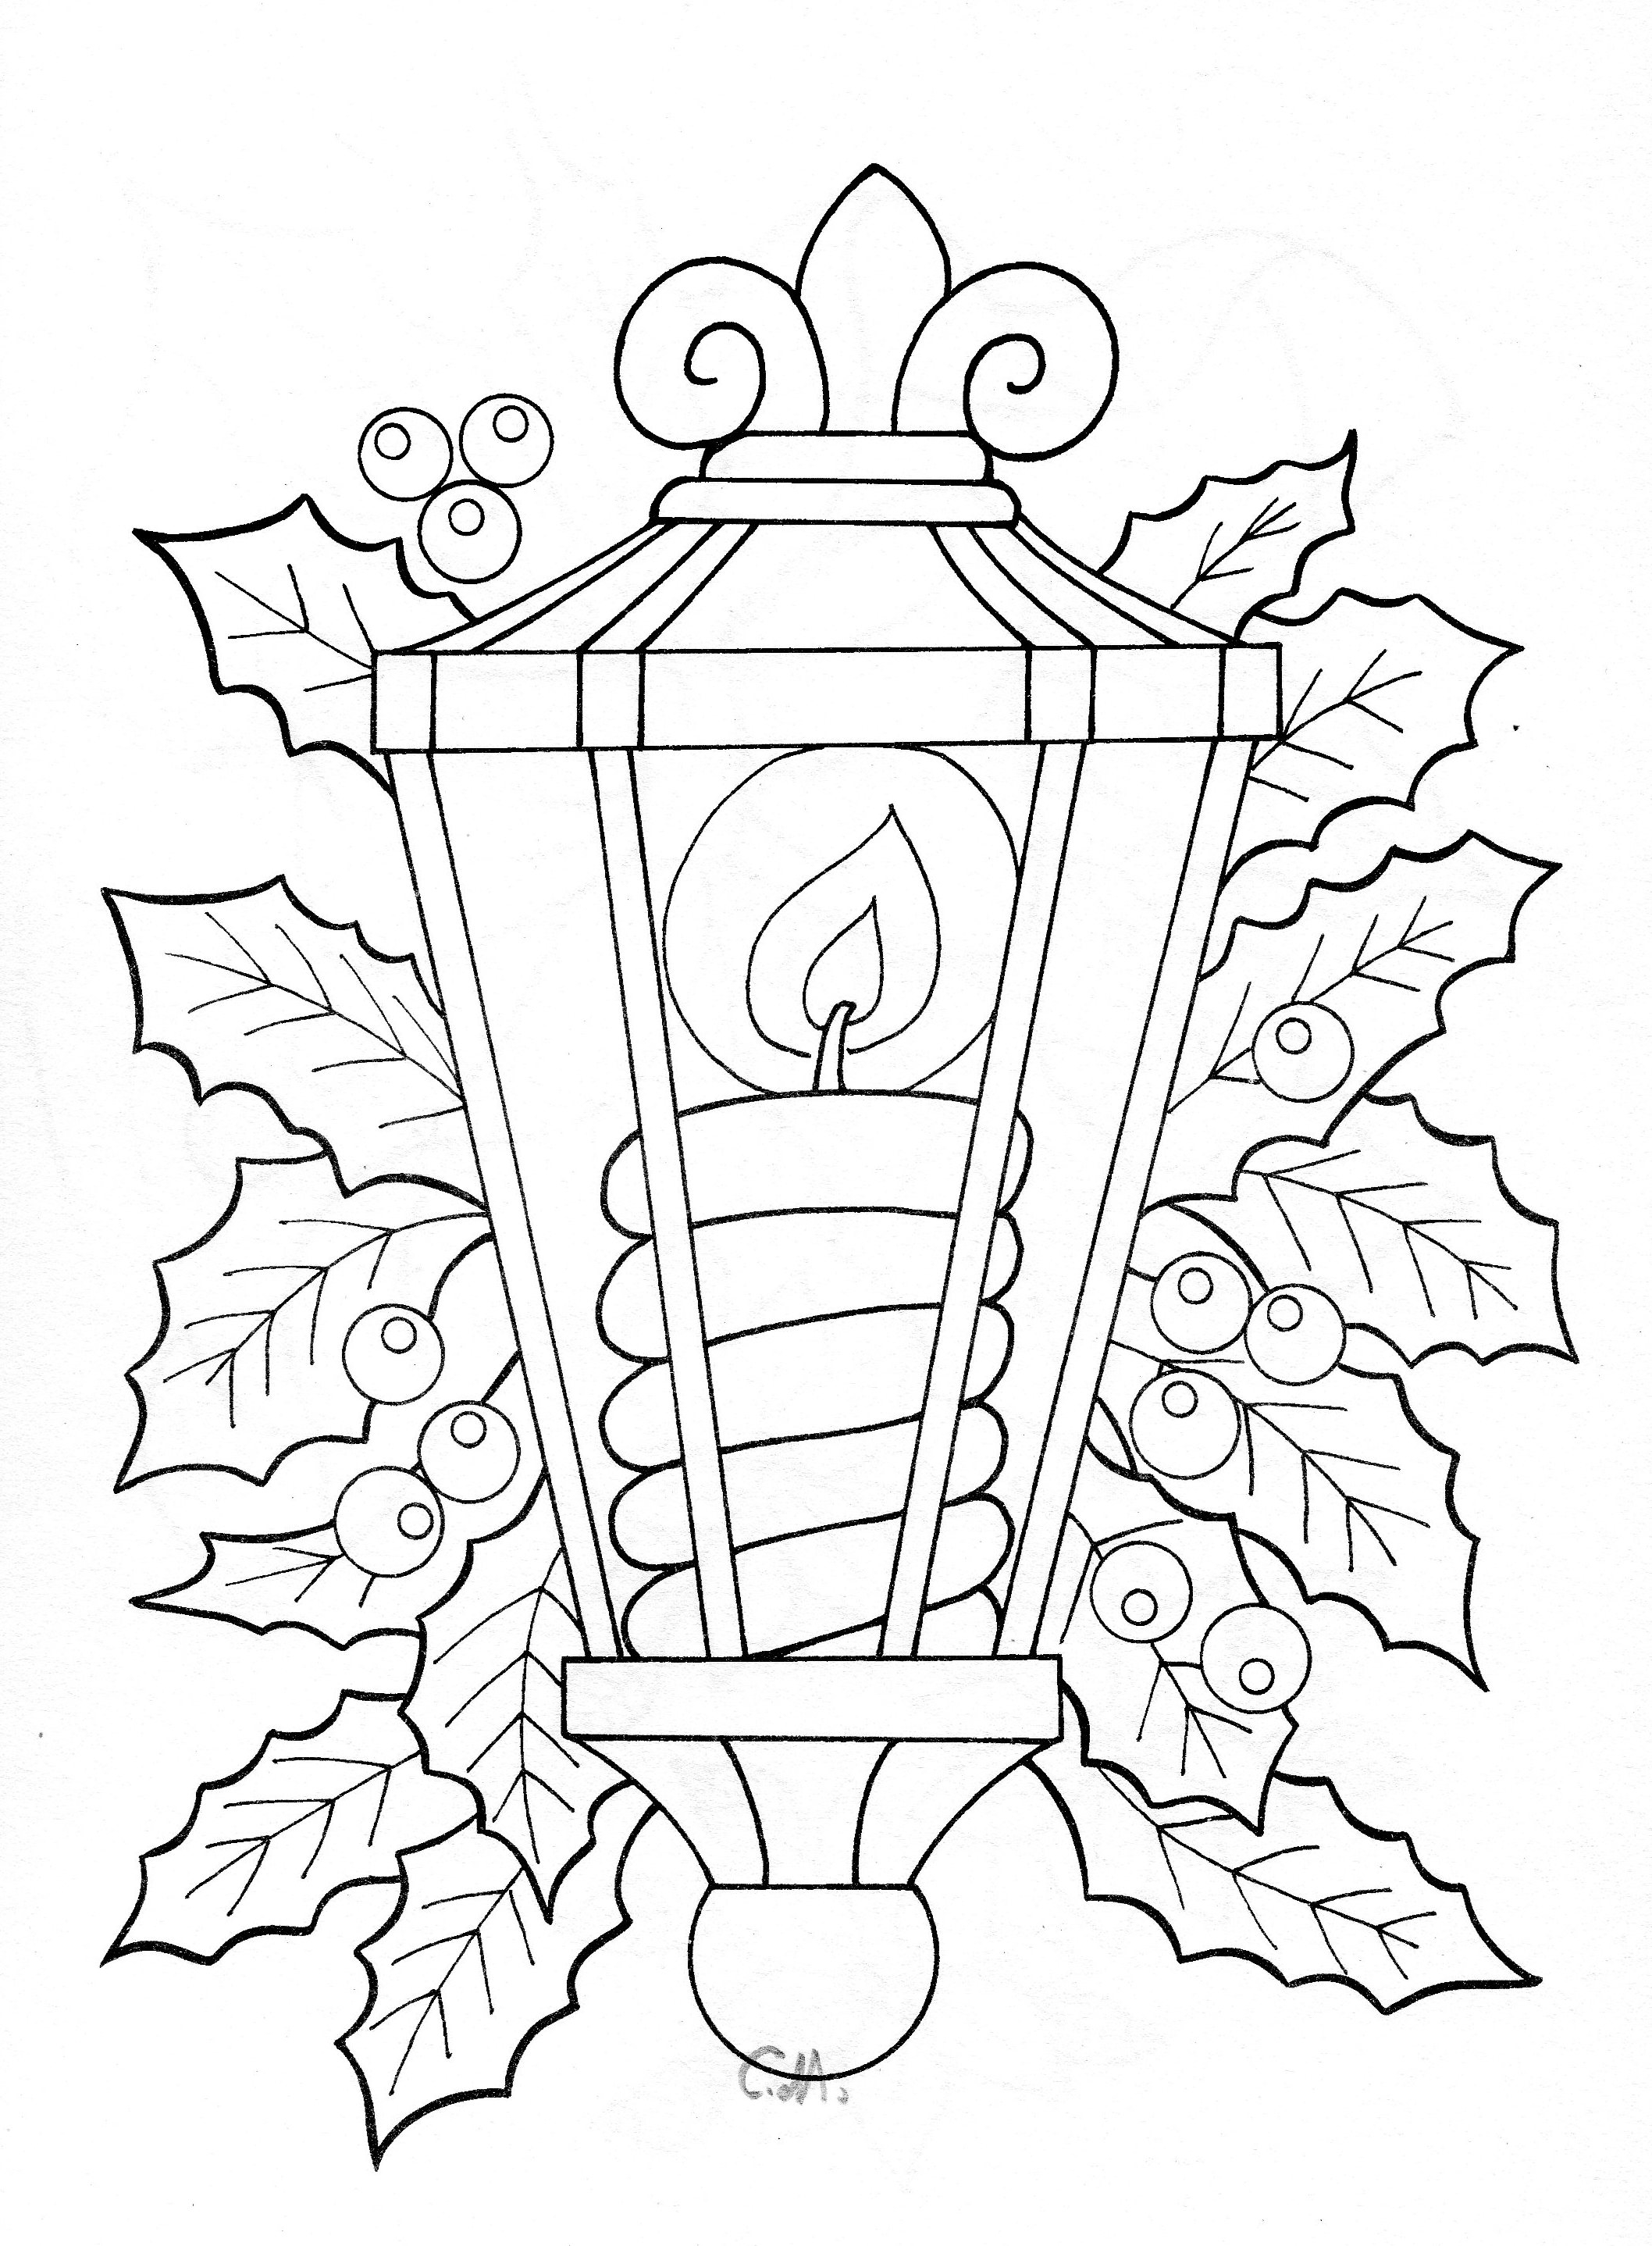 pinterest coloring pages - pinterest adult coloring pages 2 28 01 2017